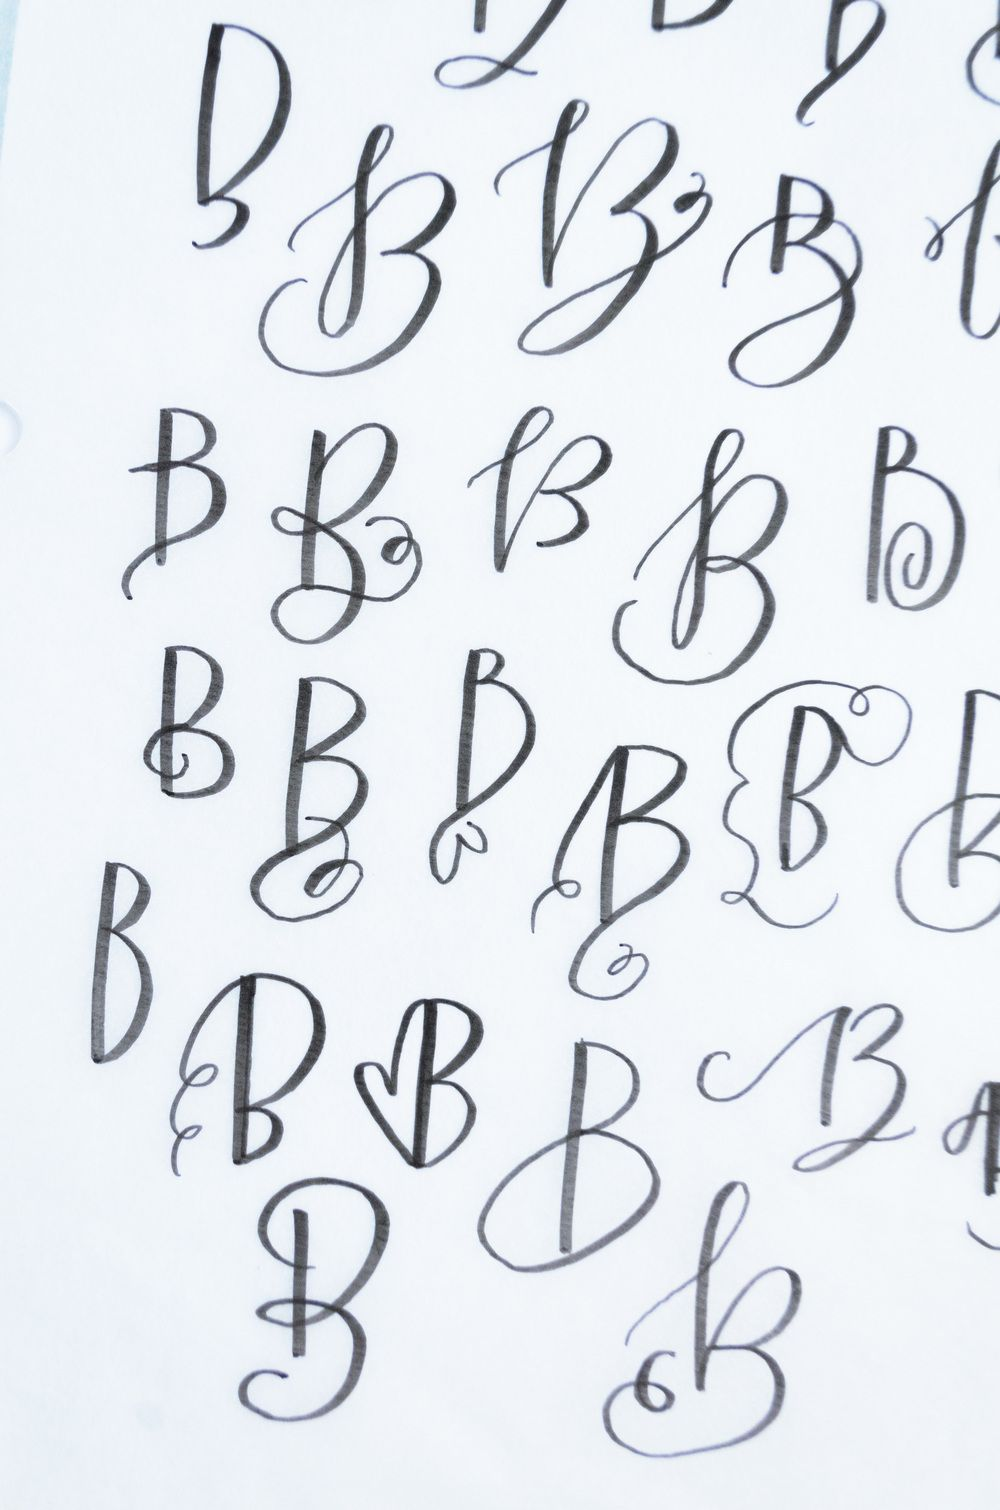 Workbooks letter b and d worksheets : 50 Ways to Draw A 'B' - Brush Lettering Practice + Creativity ...